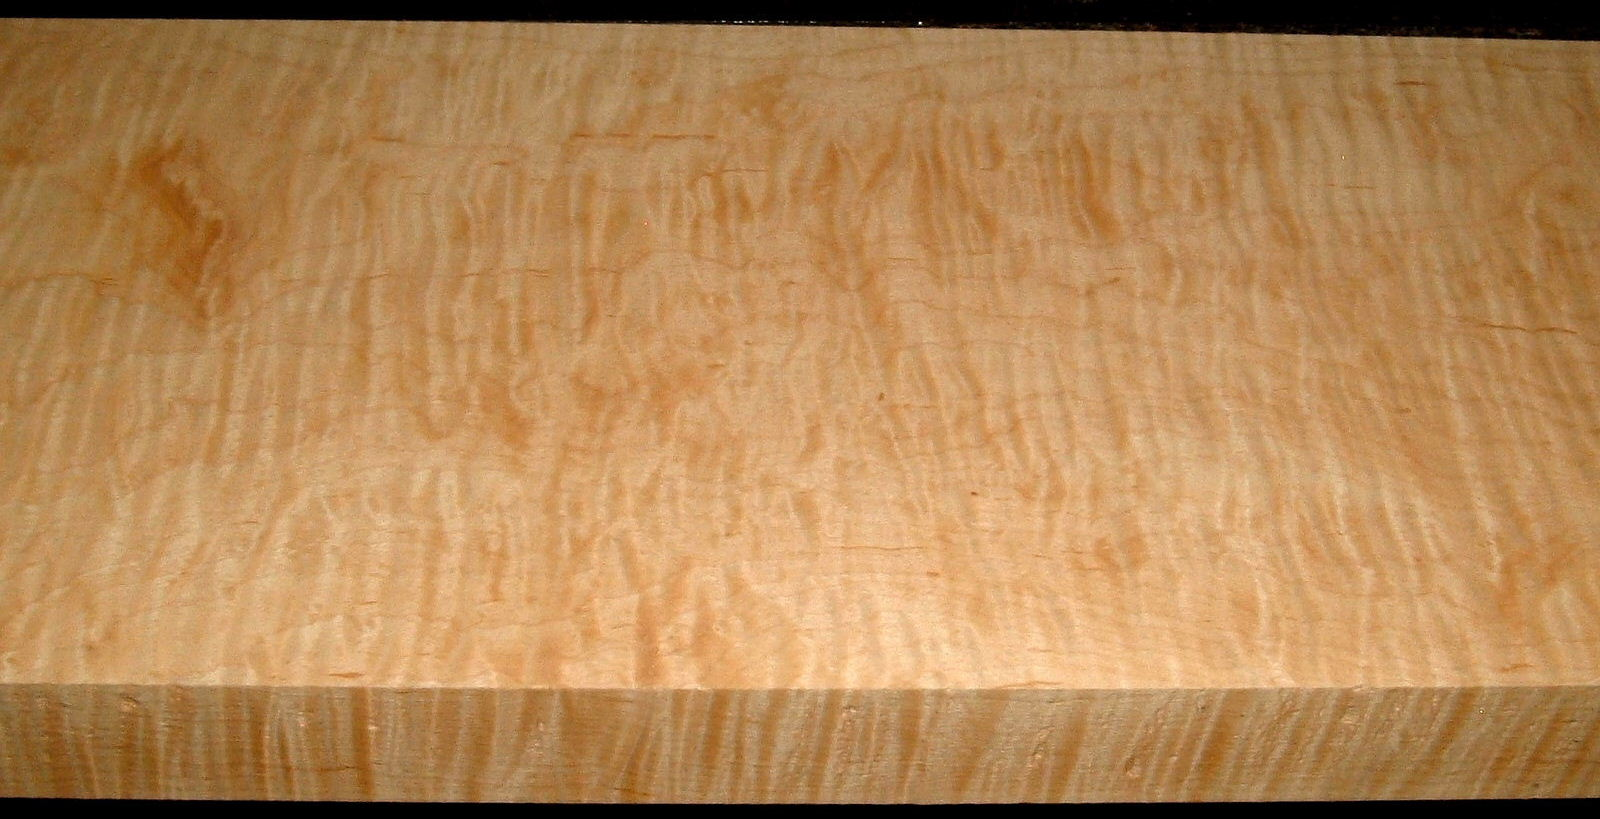 HM2001-16, 1-5/8x8-3/4x43, Curly Tiger Hard Maple